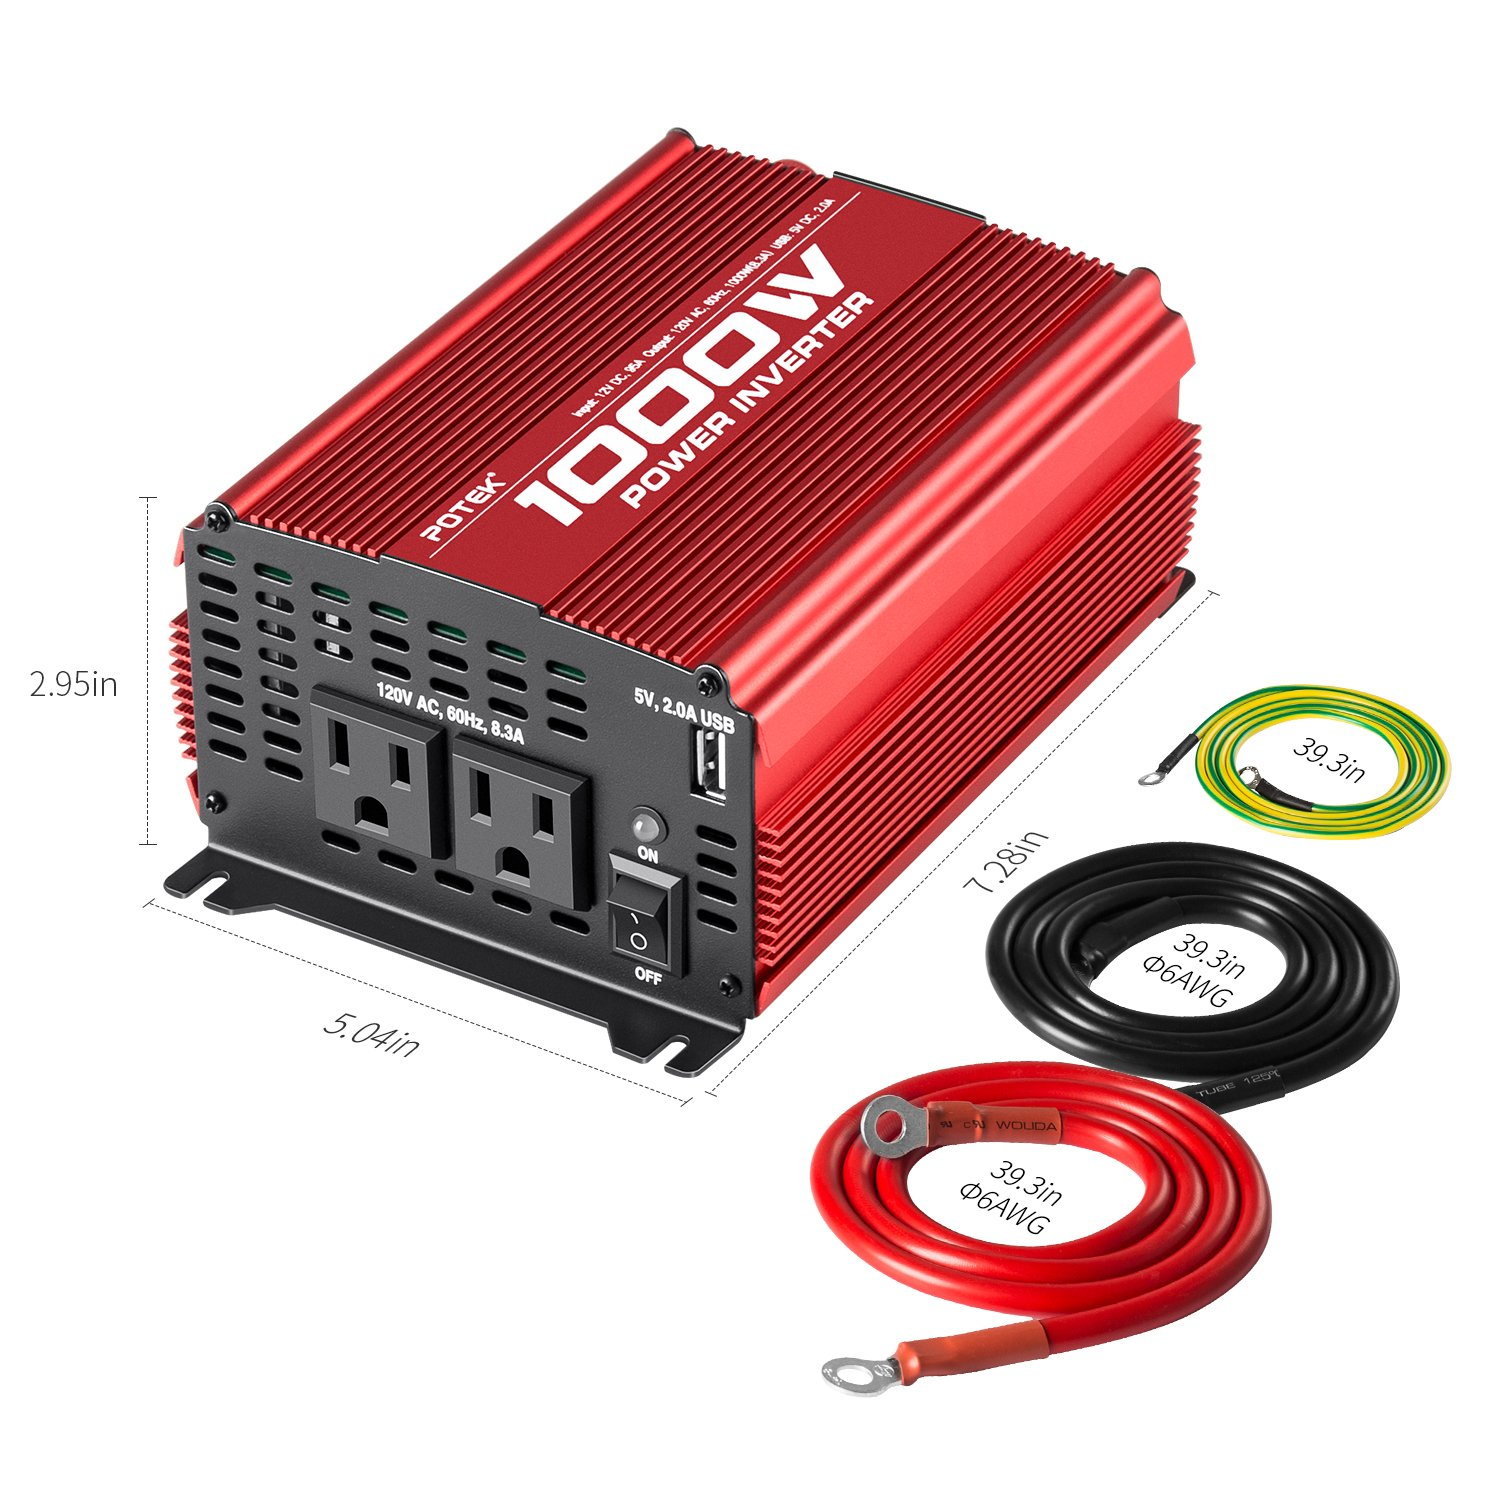 amazon com potek 1000w power inverter dc 12v to ac 110v car rh amazon com